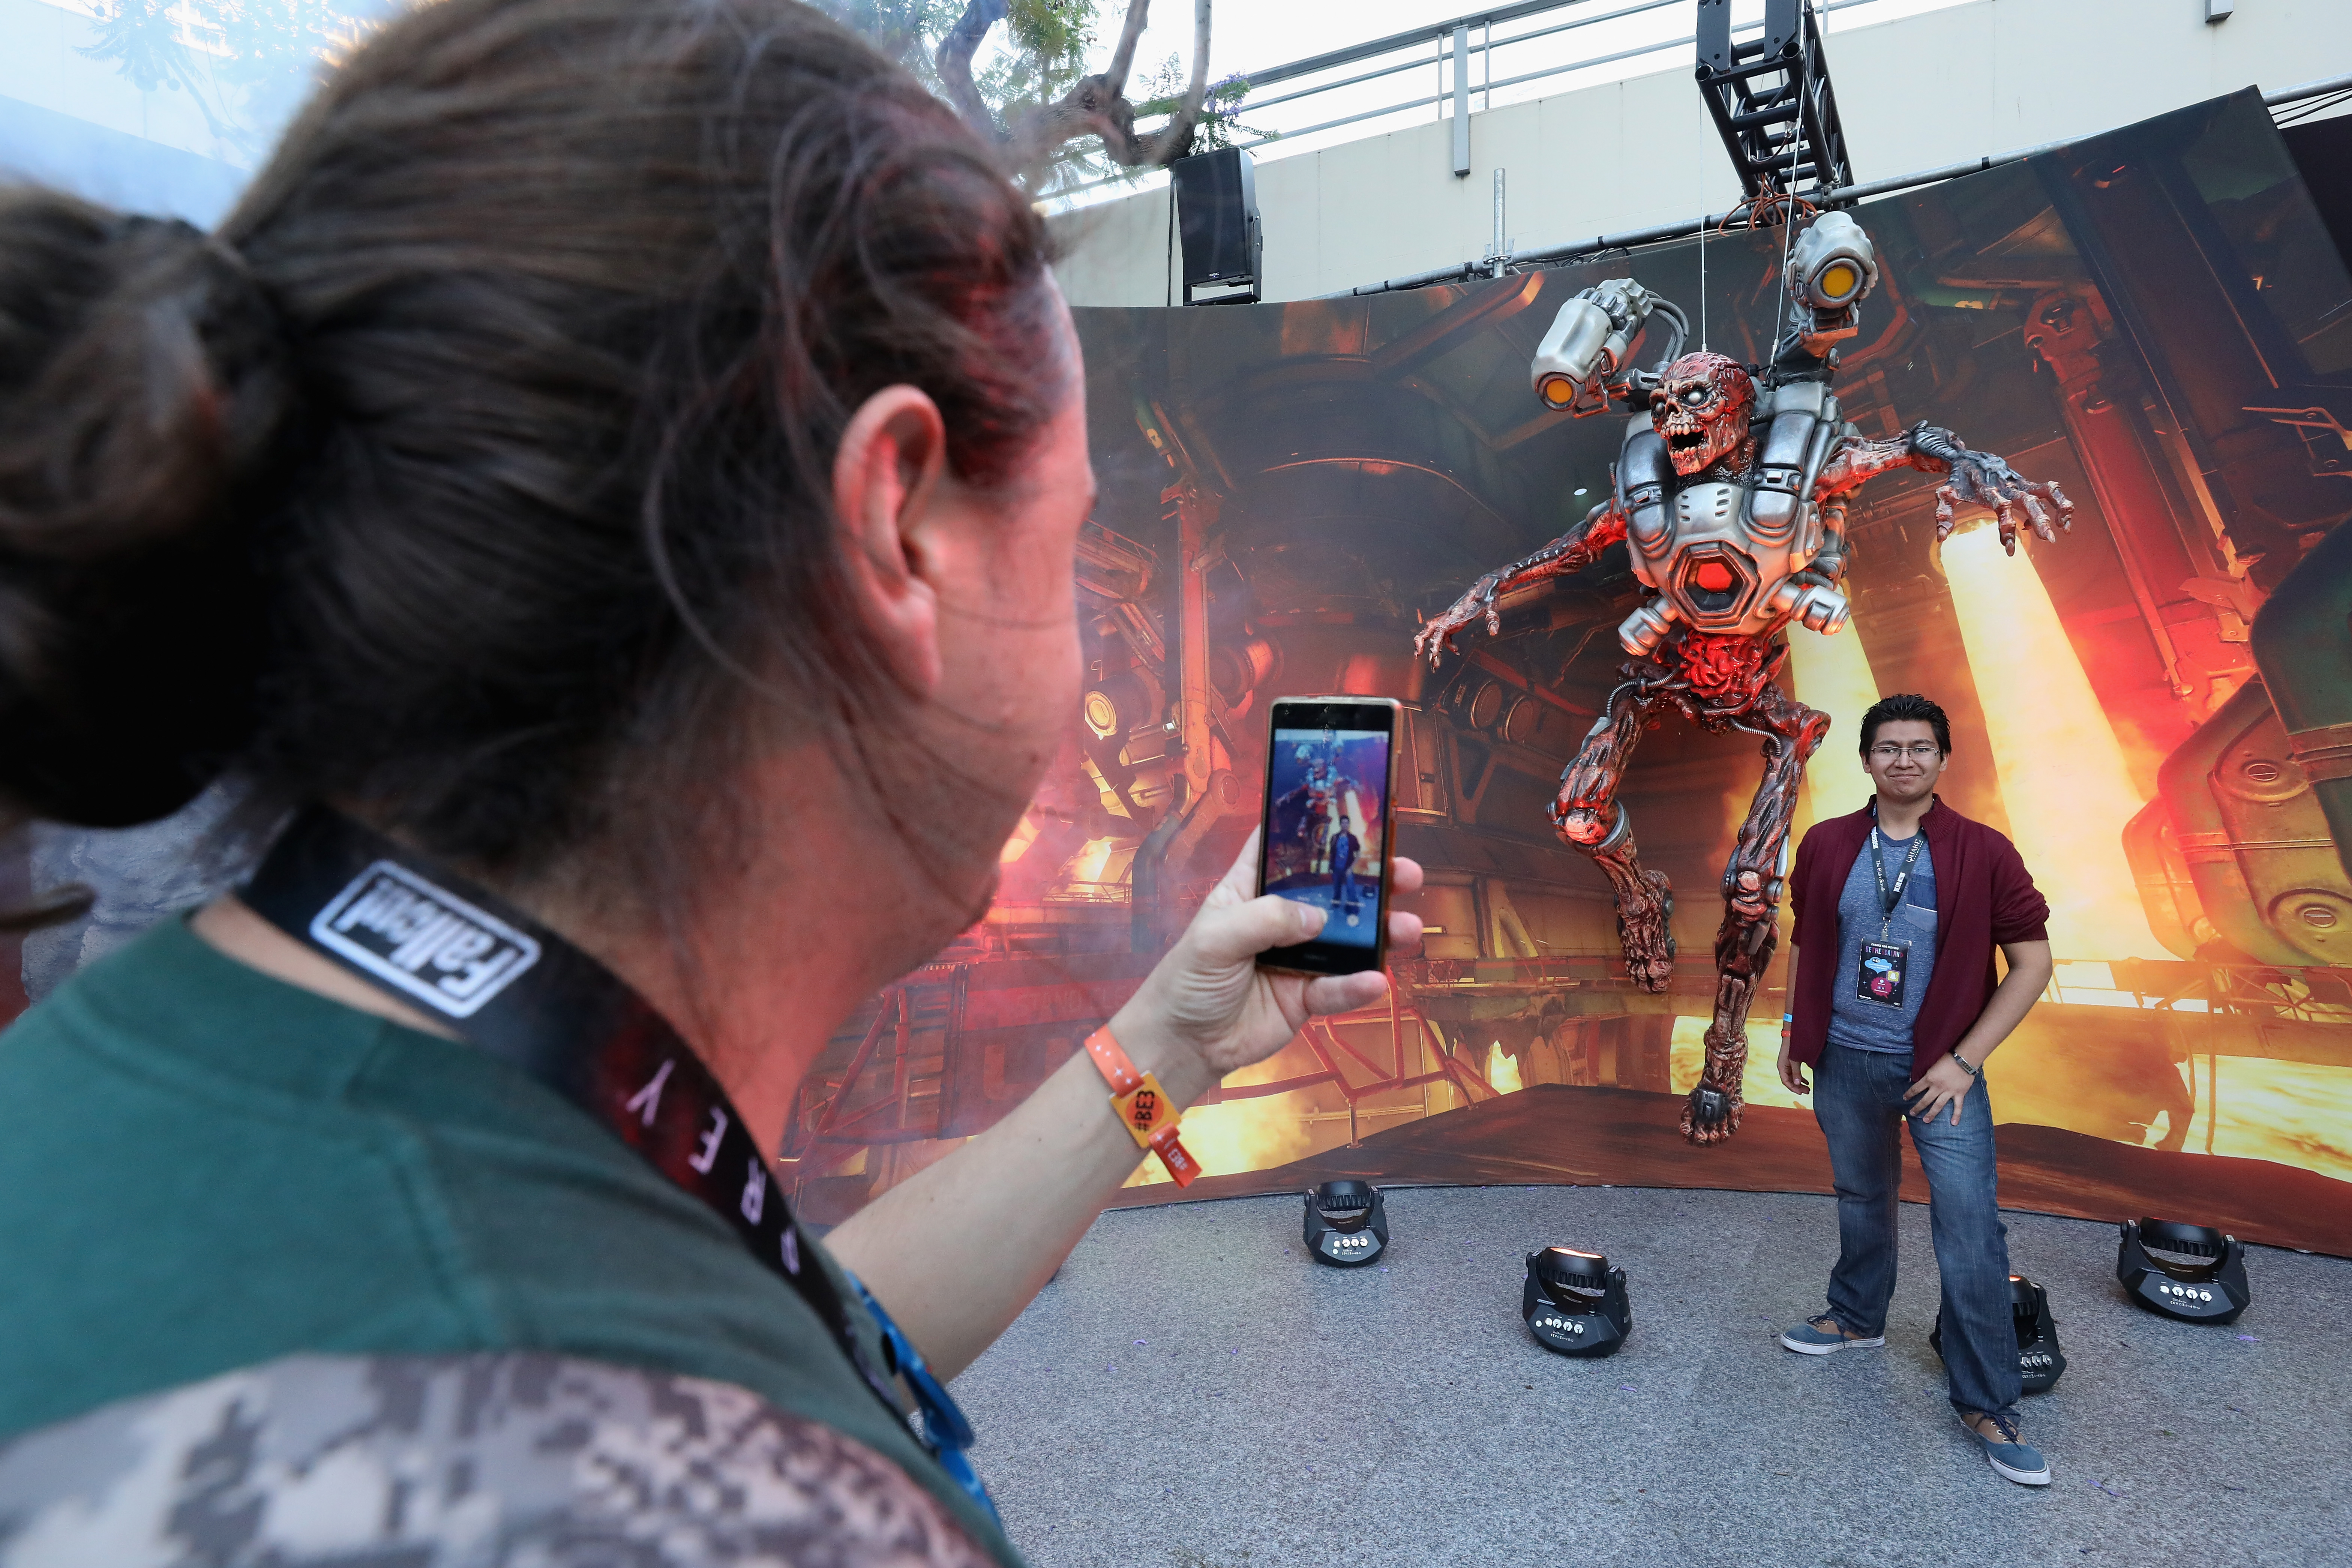 LOS ANGELES, CA - JUNE 11: David Sanchez of Mexico City, Mexico poses for a photograph under a 'Doom' statue at the Bethesda E3 conference at the LA Center Studios on June 11, 2017 in Los Angeles, California. The E3 Game Conference begins on Tuesday June 13. (Photo by Christian Petersen/Getty Images)